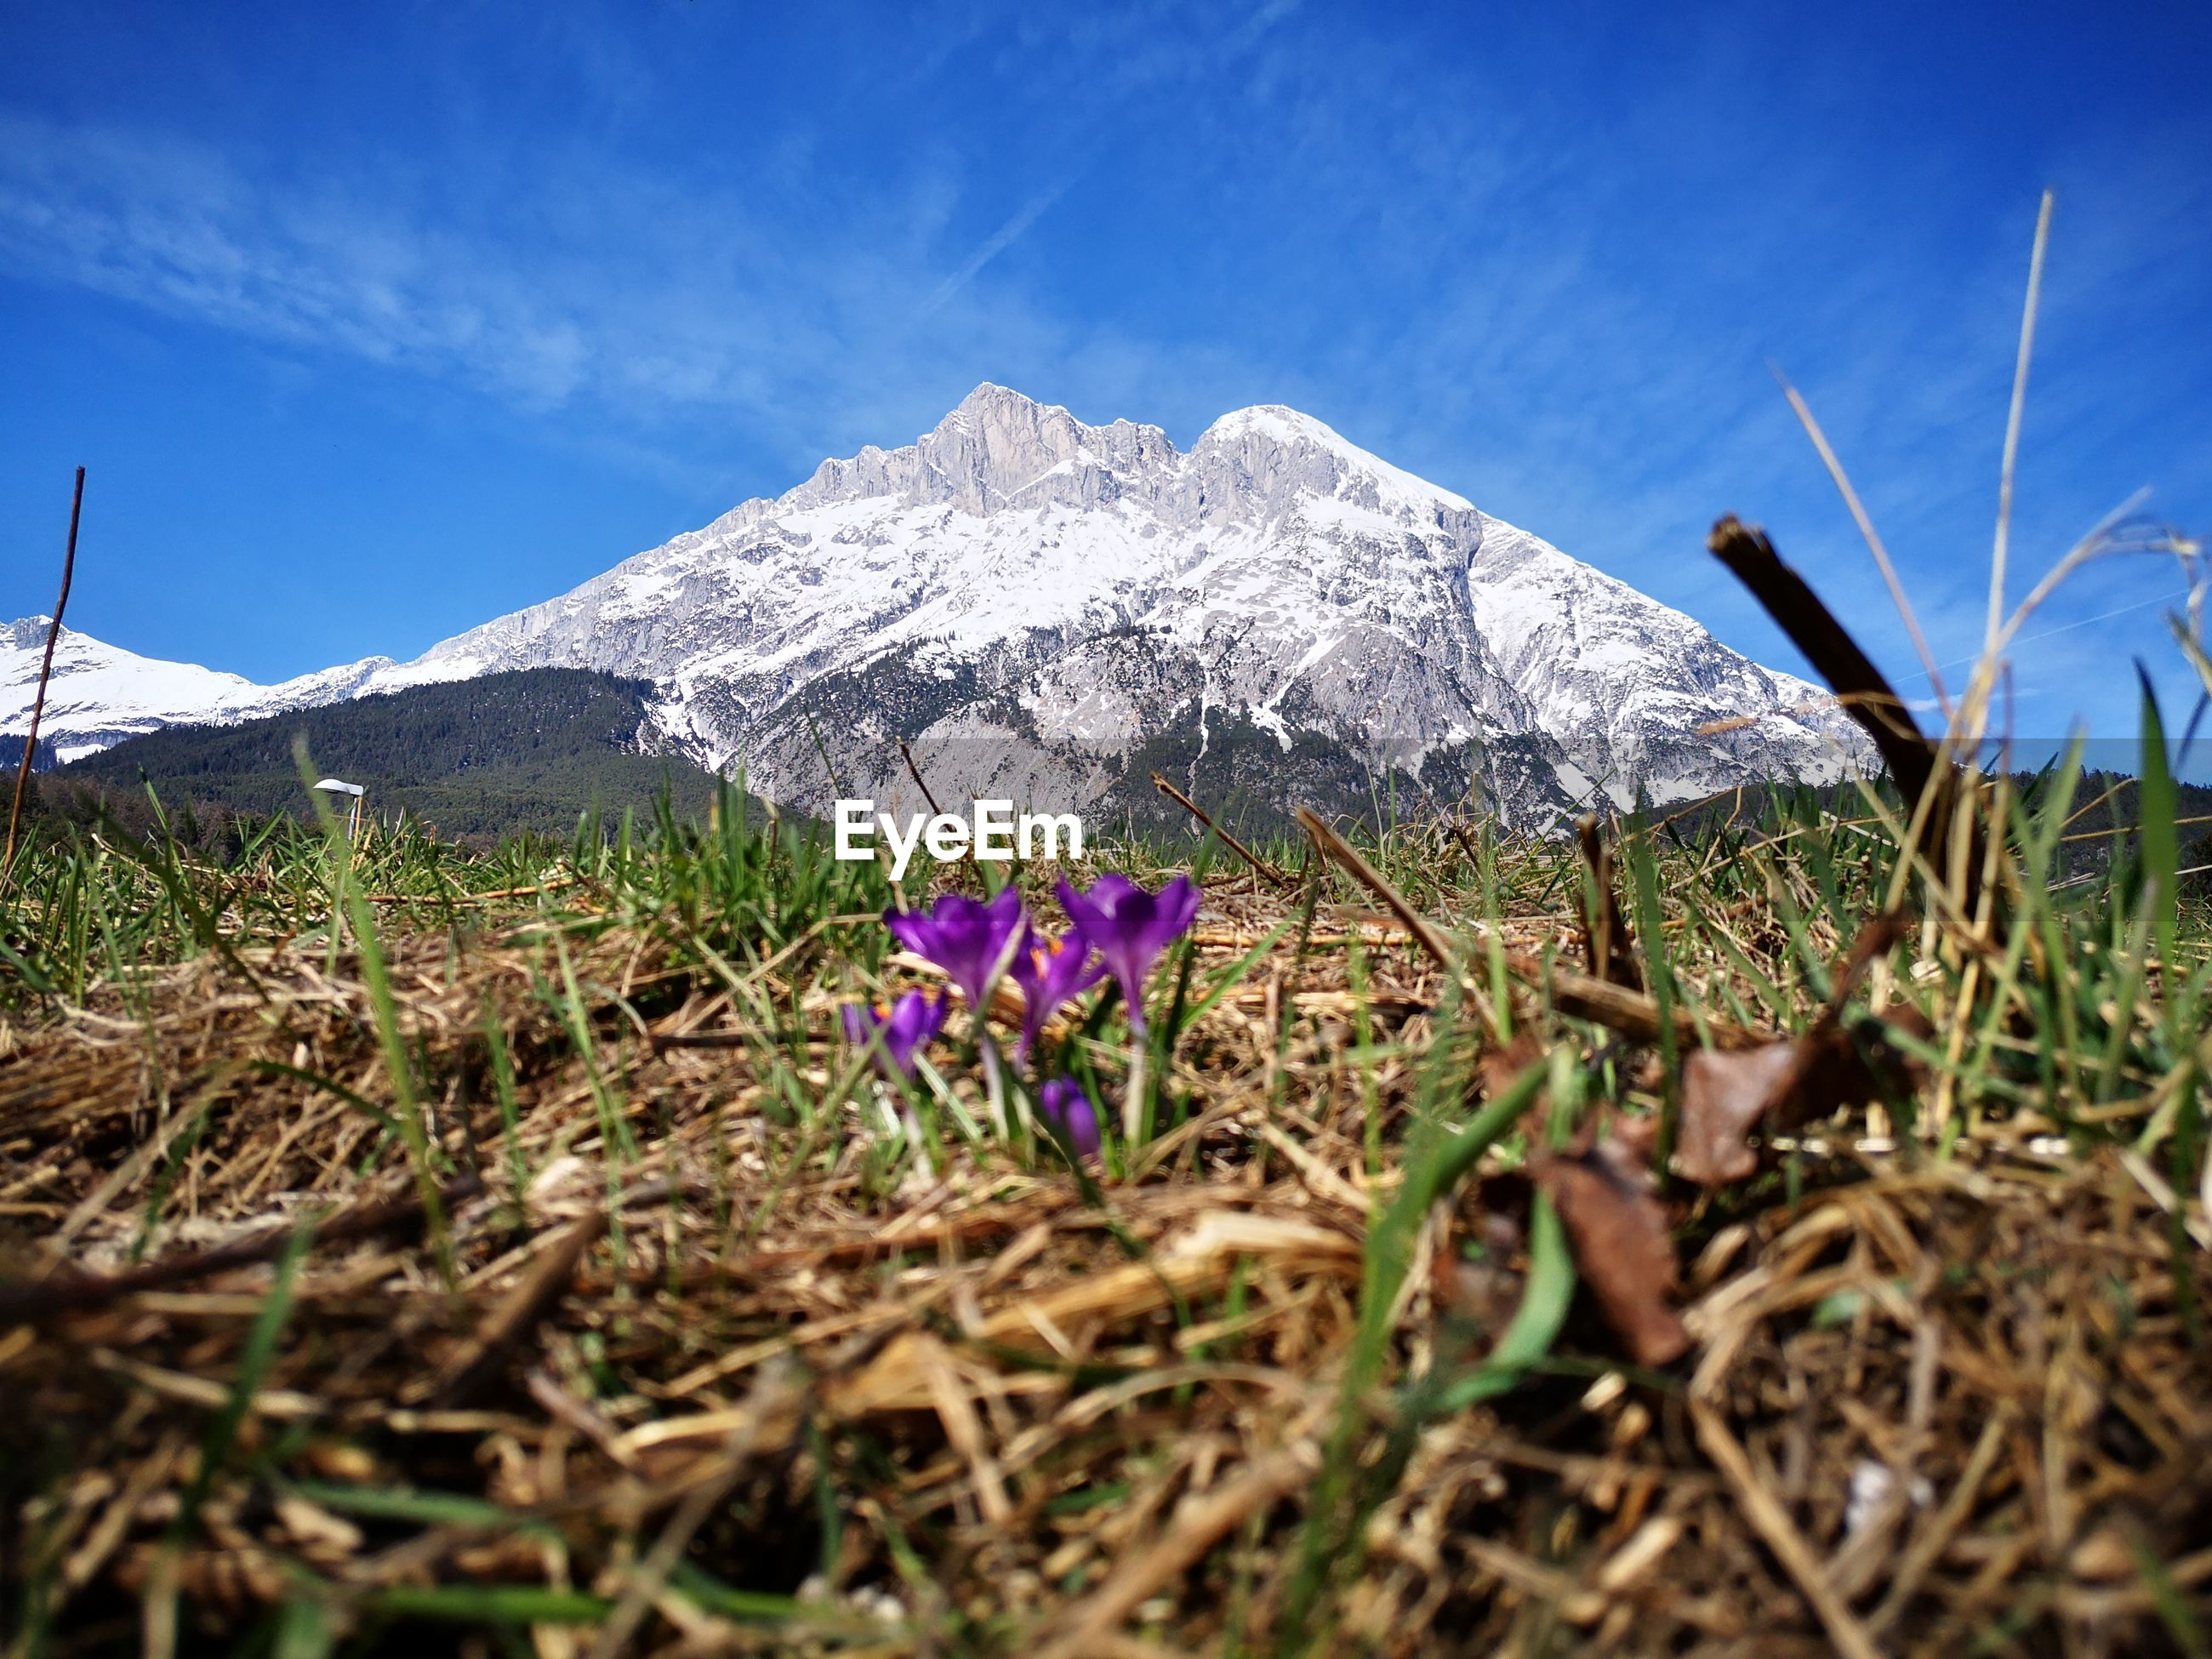 Purple flowering plants on field against snowcapped mountains